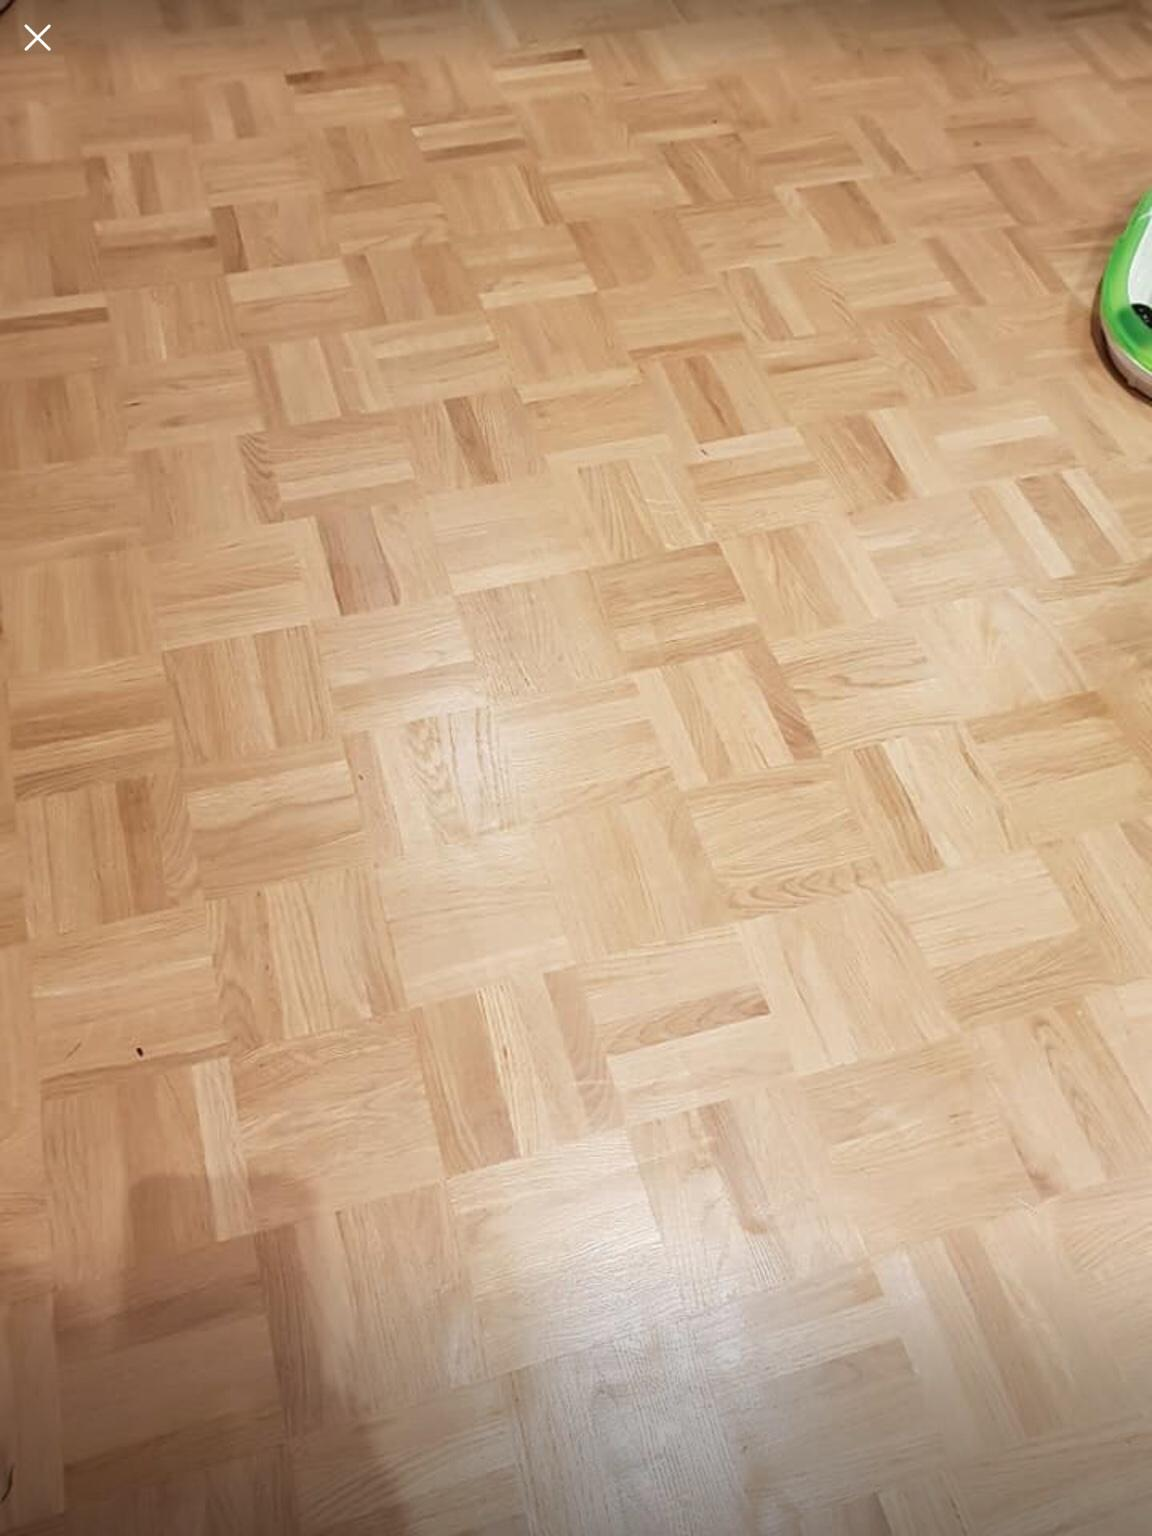 Finger Parquet flooring reclaimed fingers lot of 80